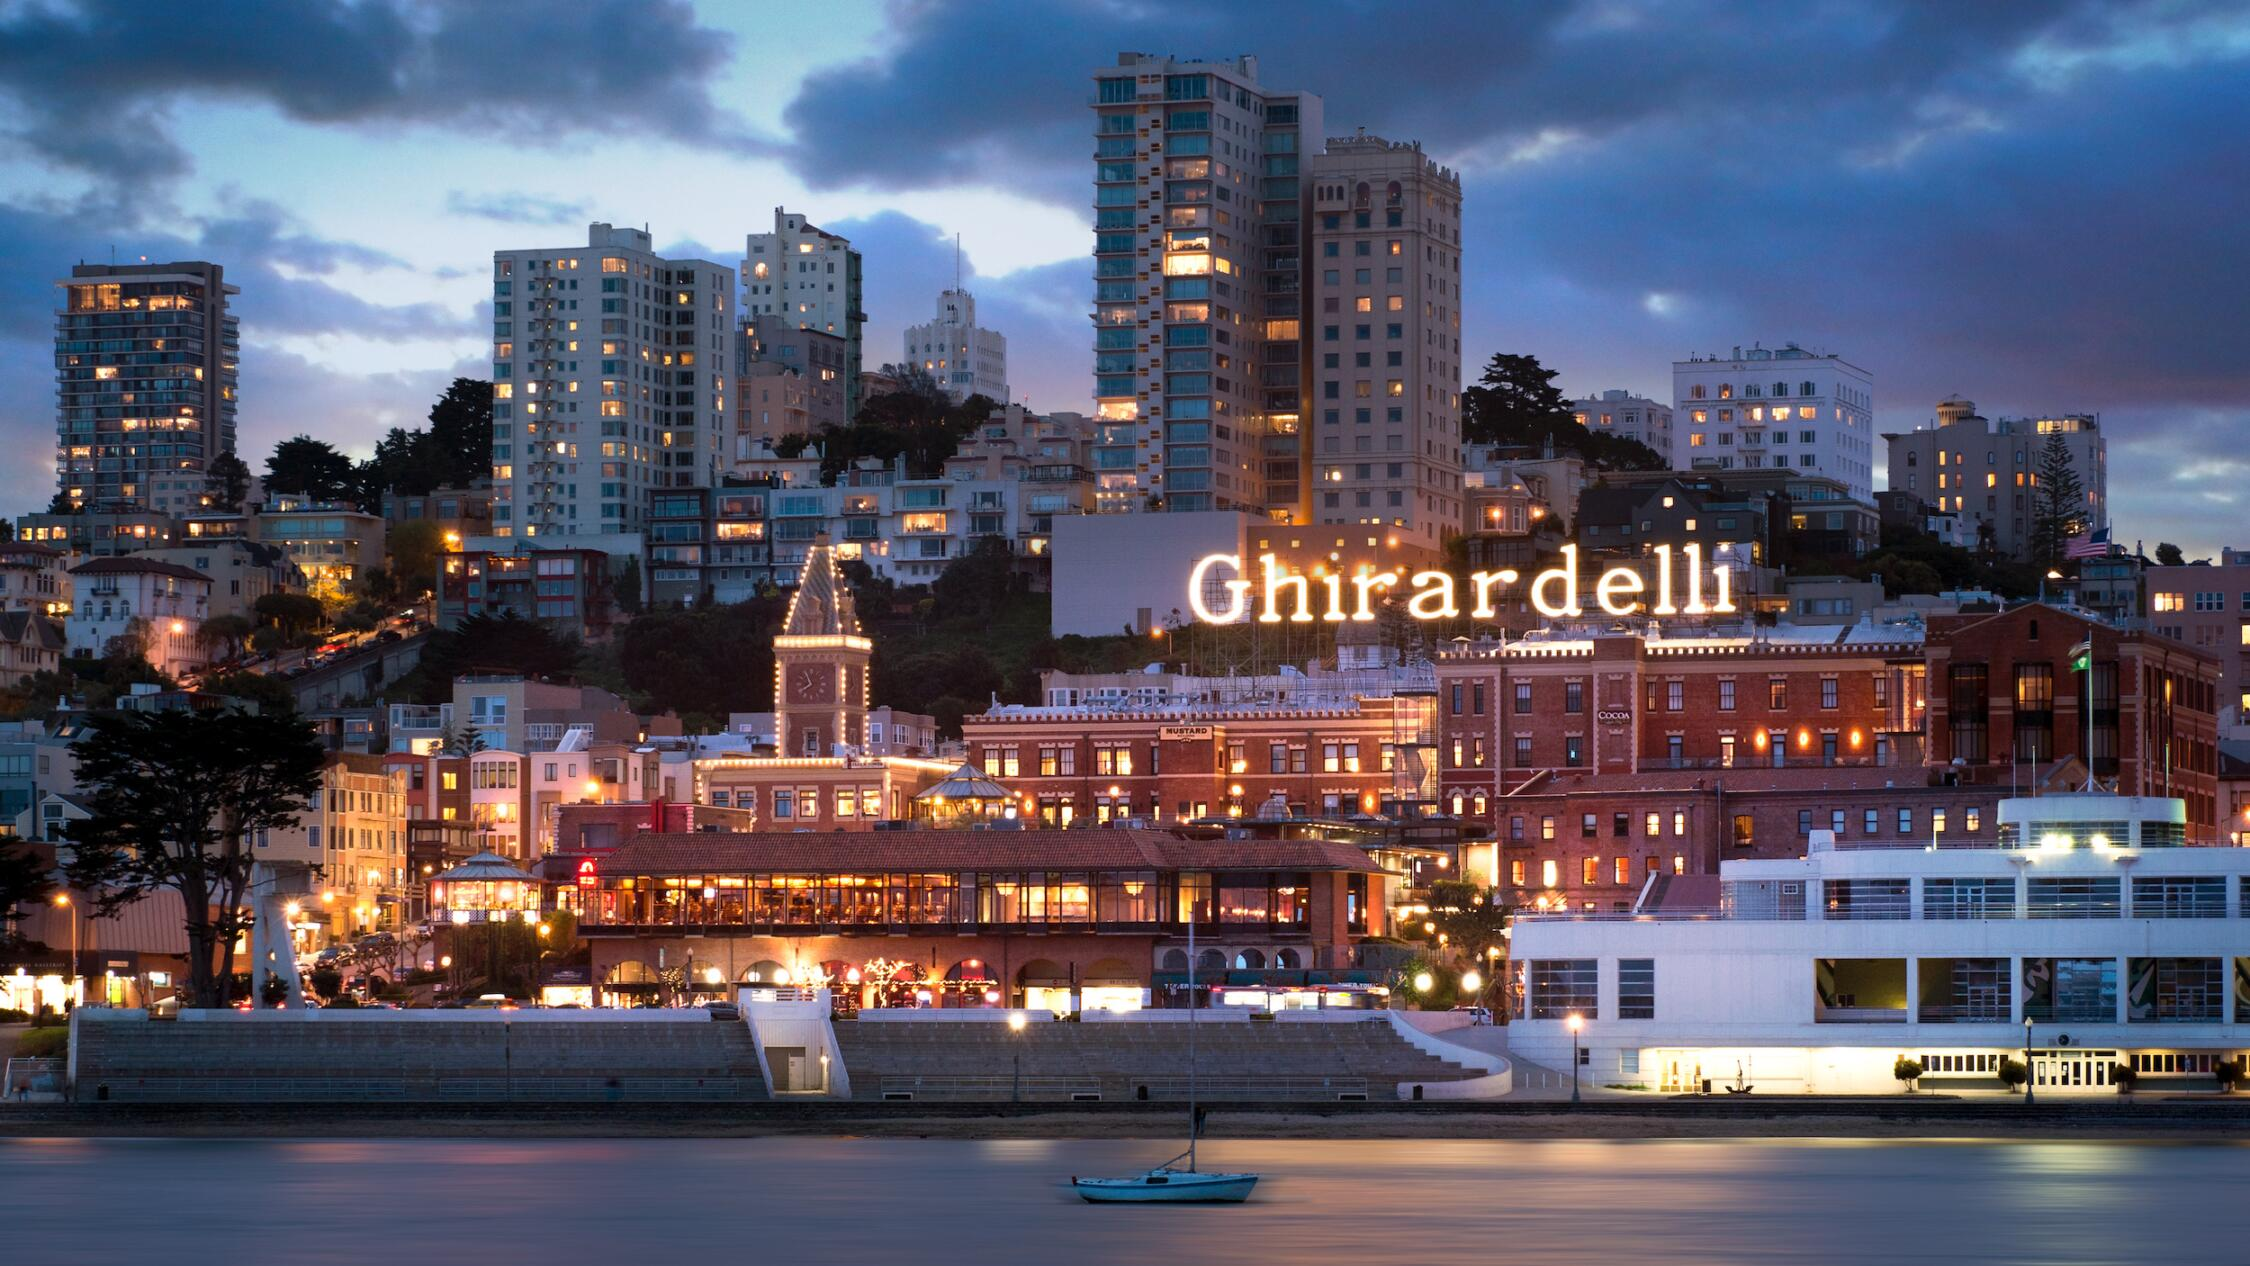 Ghirardelli Square exterior at dusk with bay in foreground and skyline in background